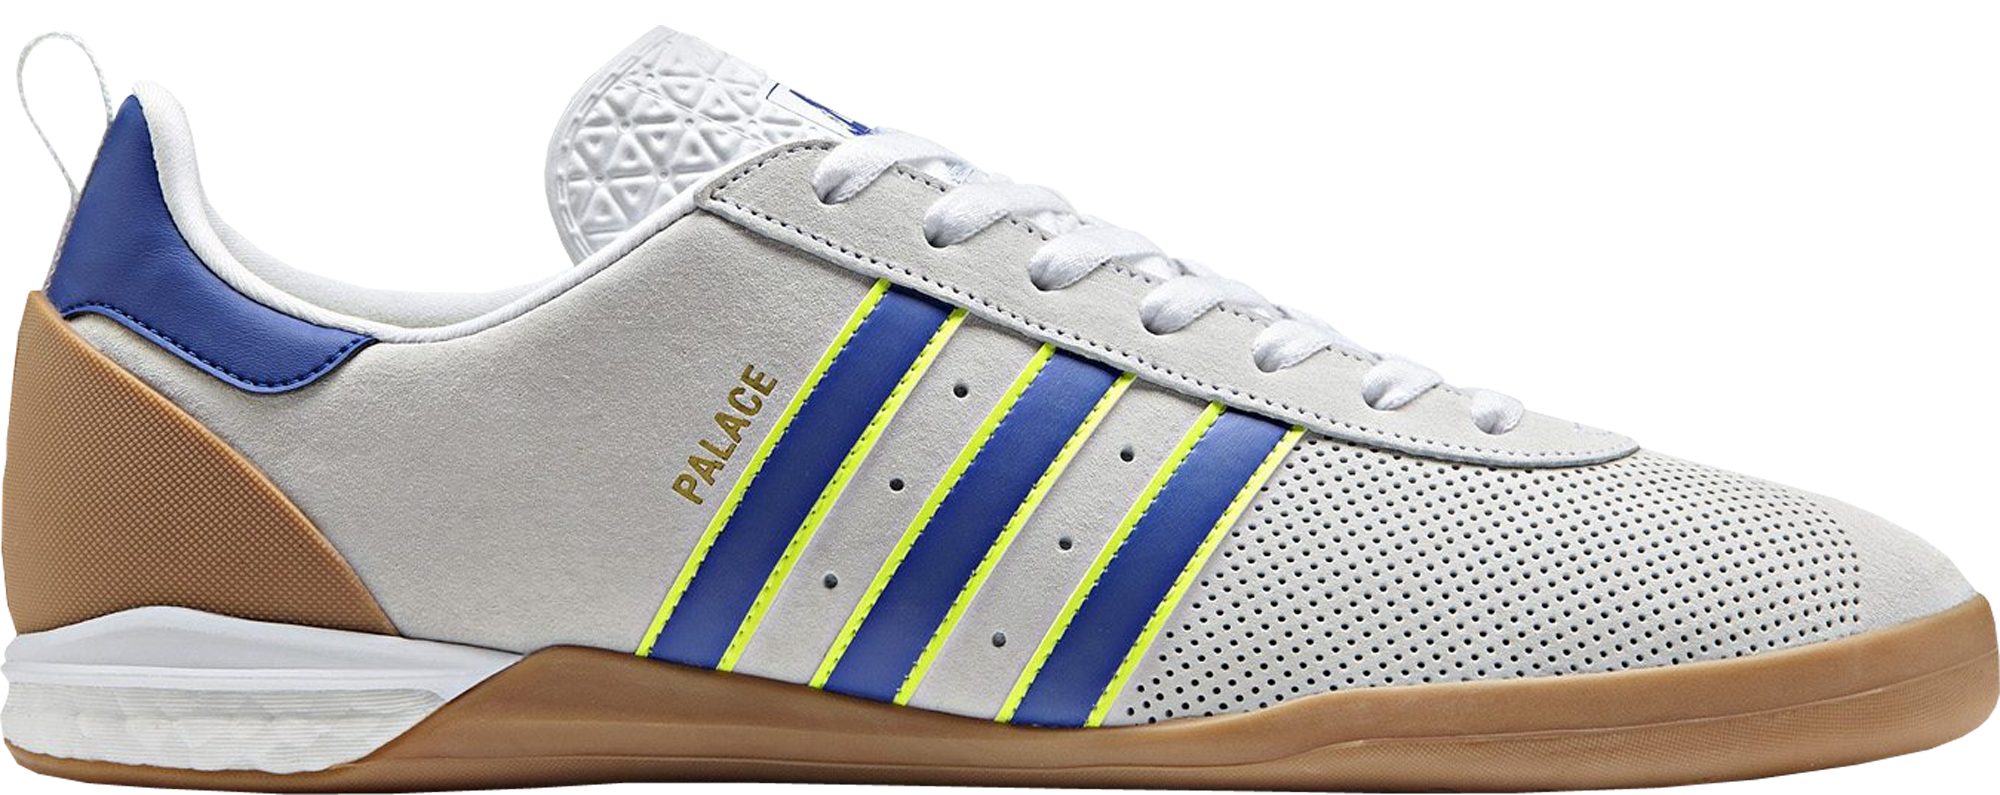 4ba67b33355c Palace x adidas Gazelle Indoor White - StockX News